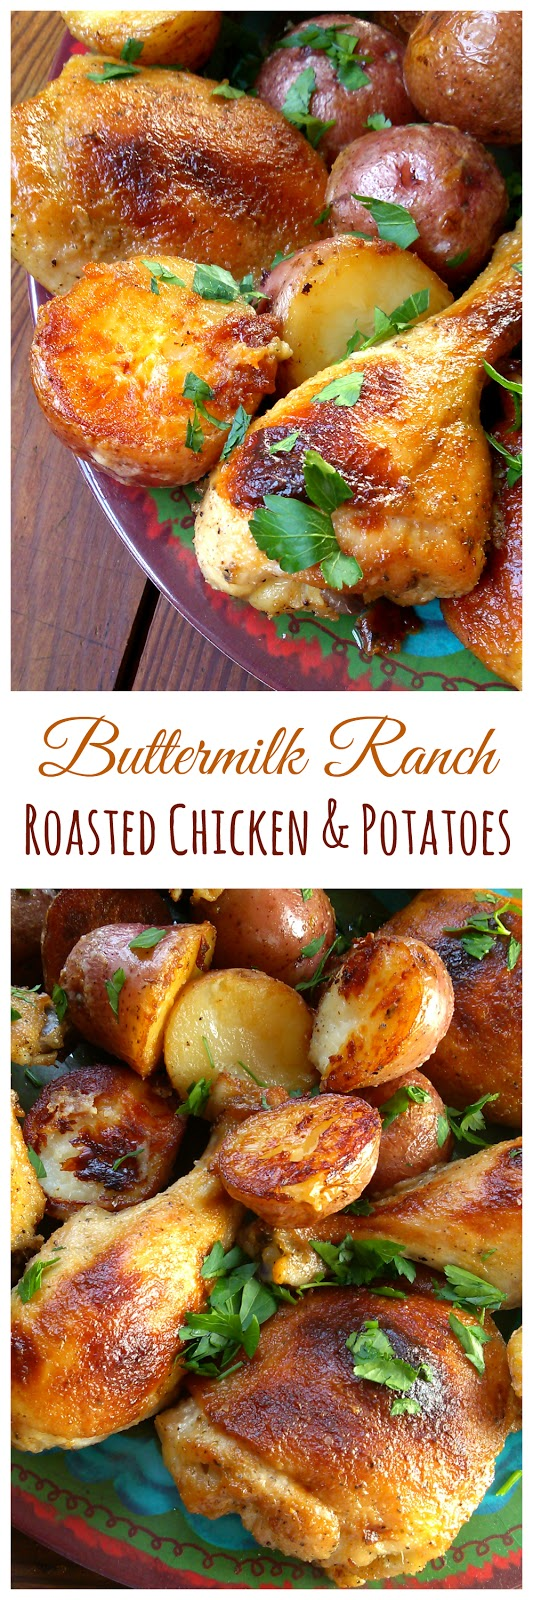 Buttermilk Ranch Roasted Chicken with Potatoes (much like Million Dollar Chicken). This whole meal cooks in one pan!